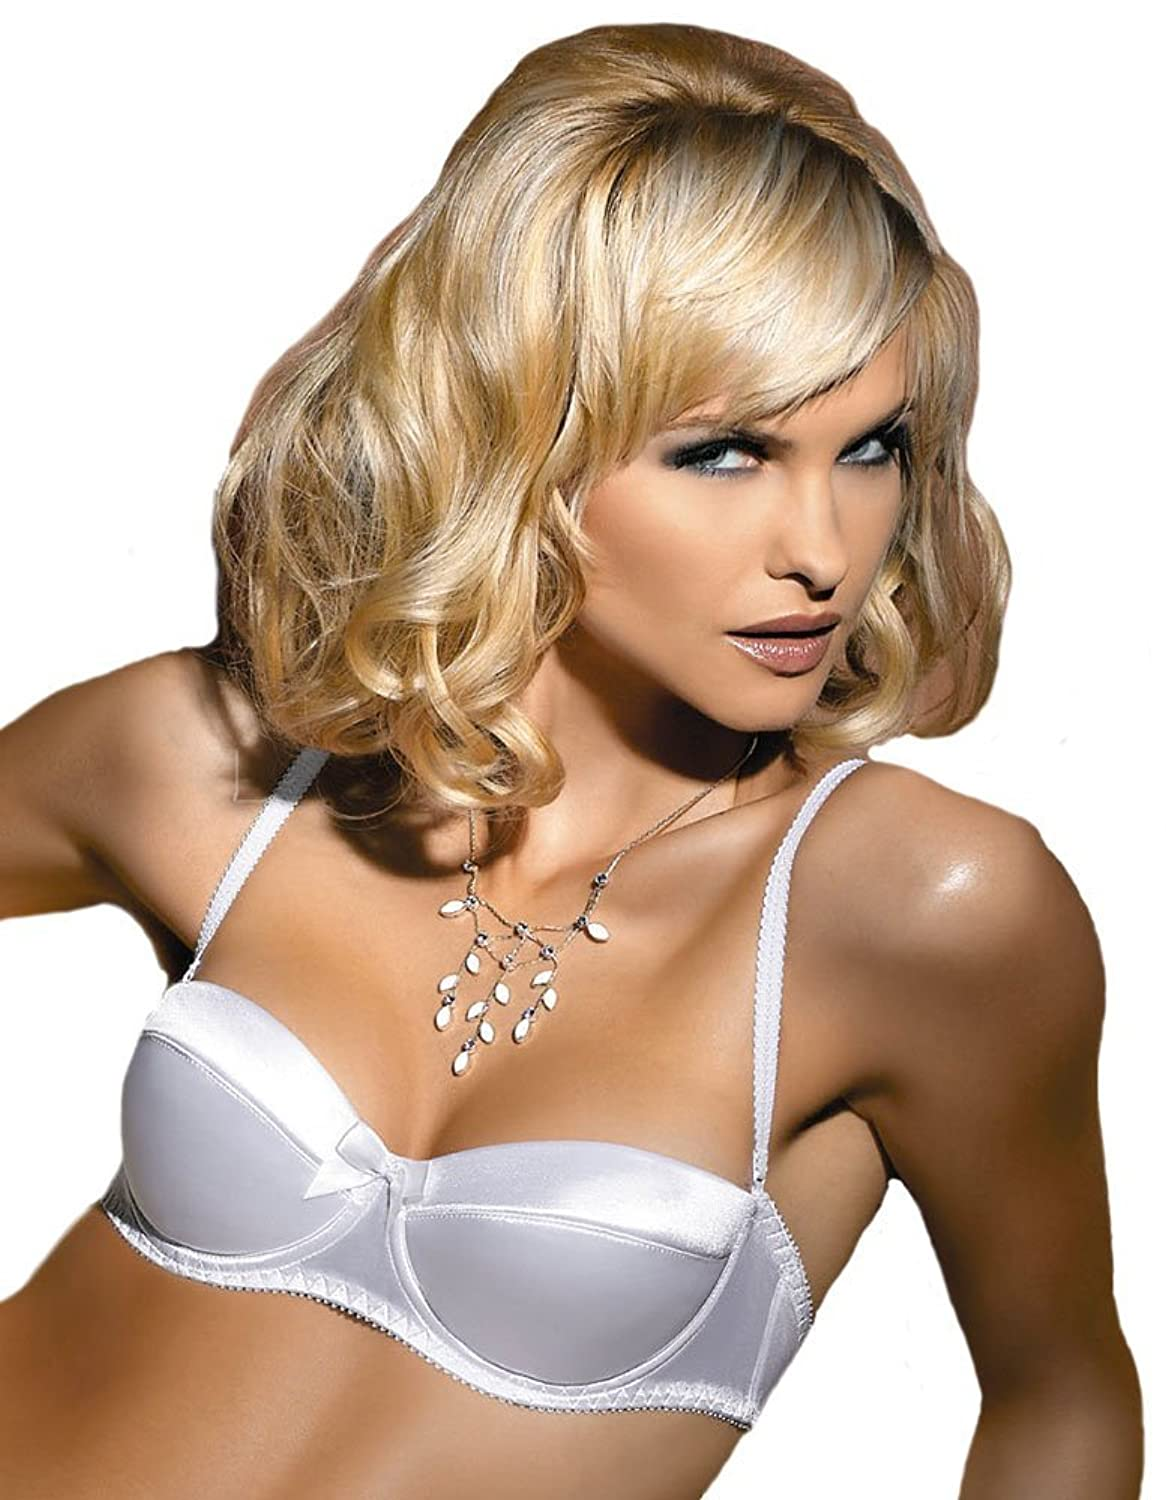 Stunning Satin Look Balconette Bra With A Central Bust Bow - 30A - In White